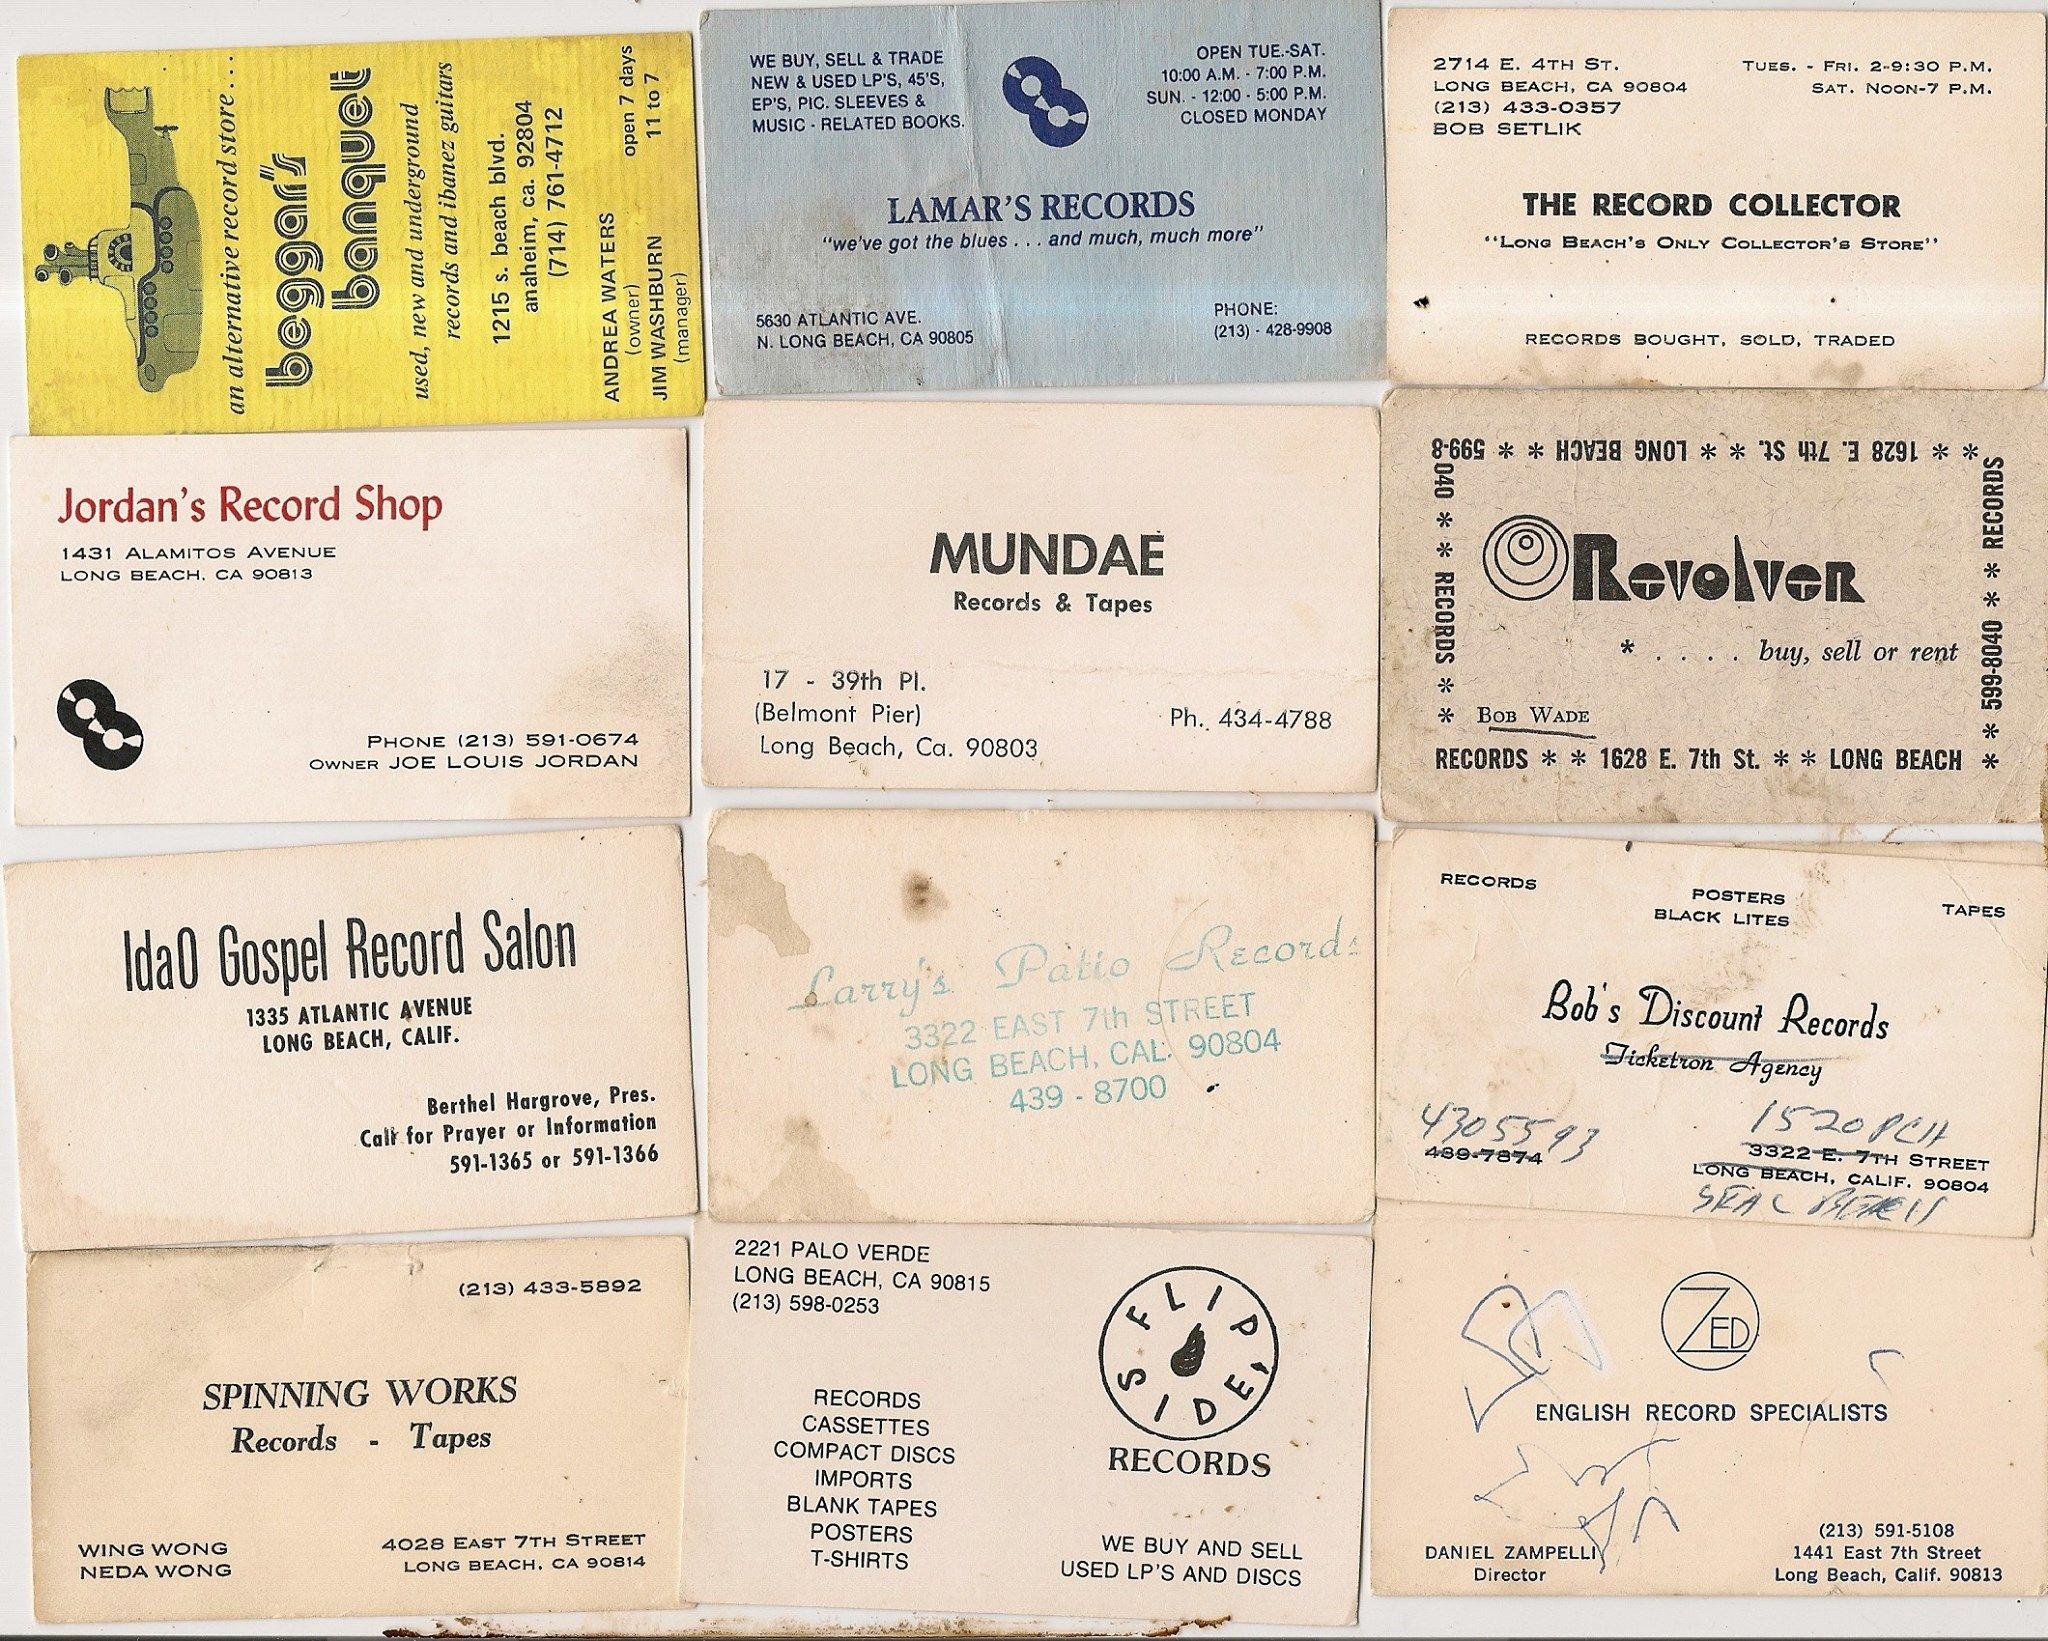 business cards from old long beach record stores